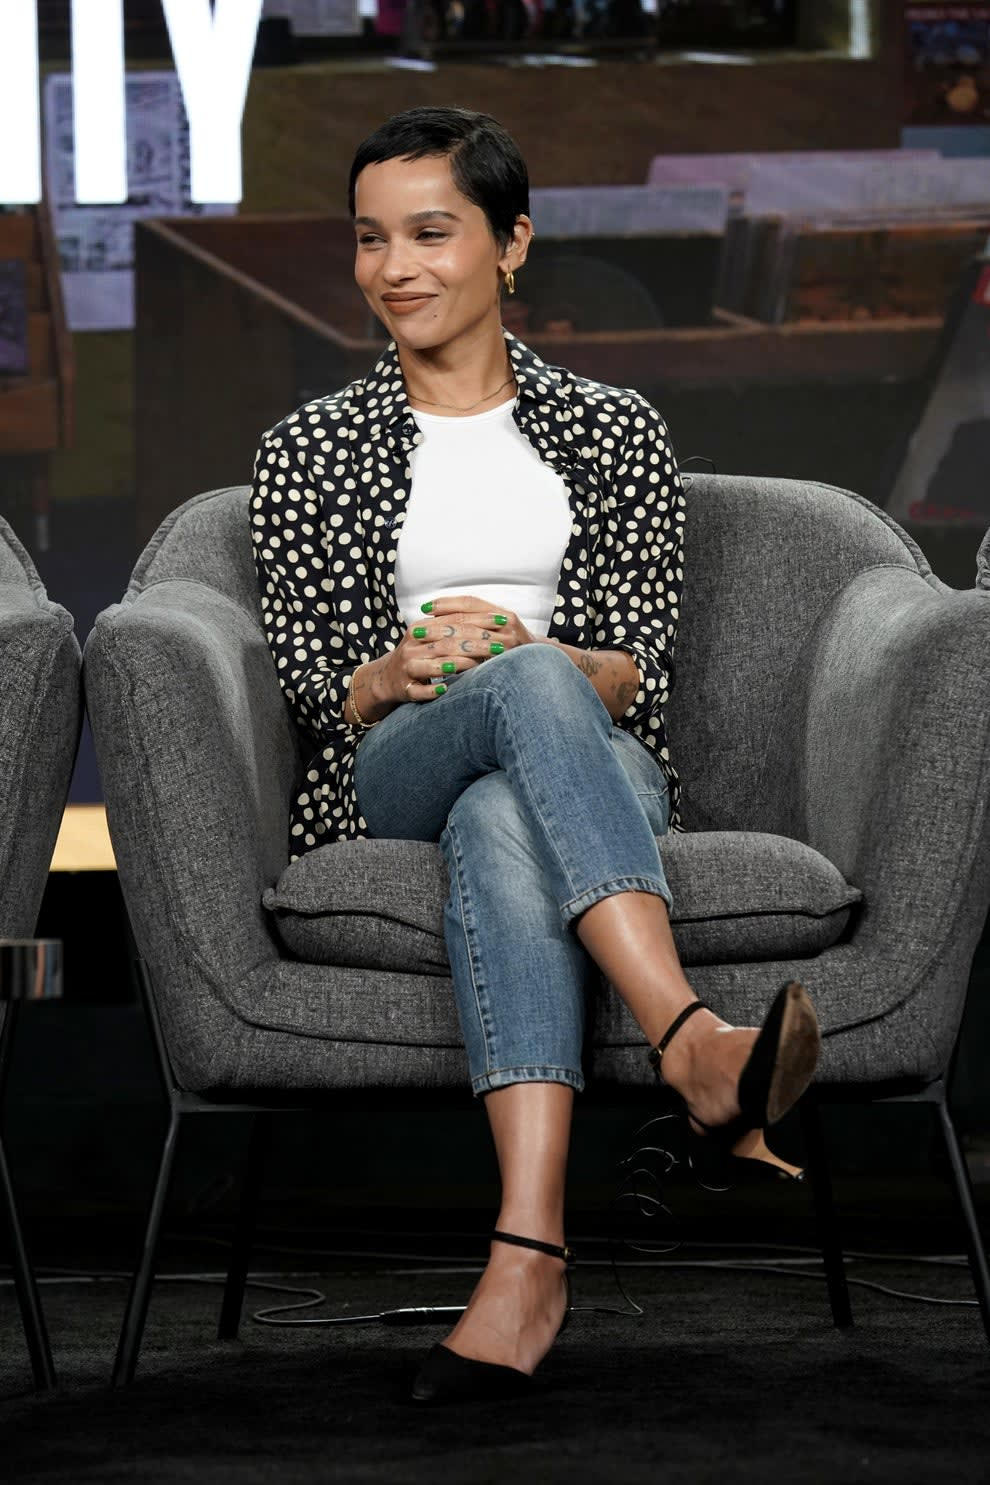 Zoe sitting in a puffy chair in jeans polka dot shirt and high heels